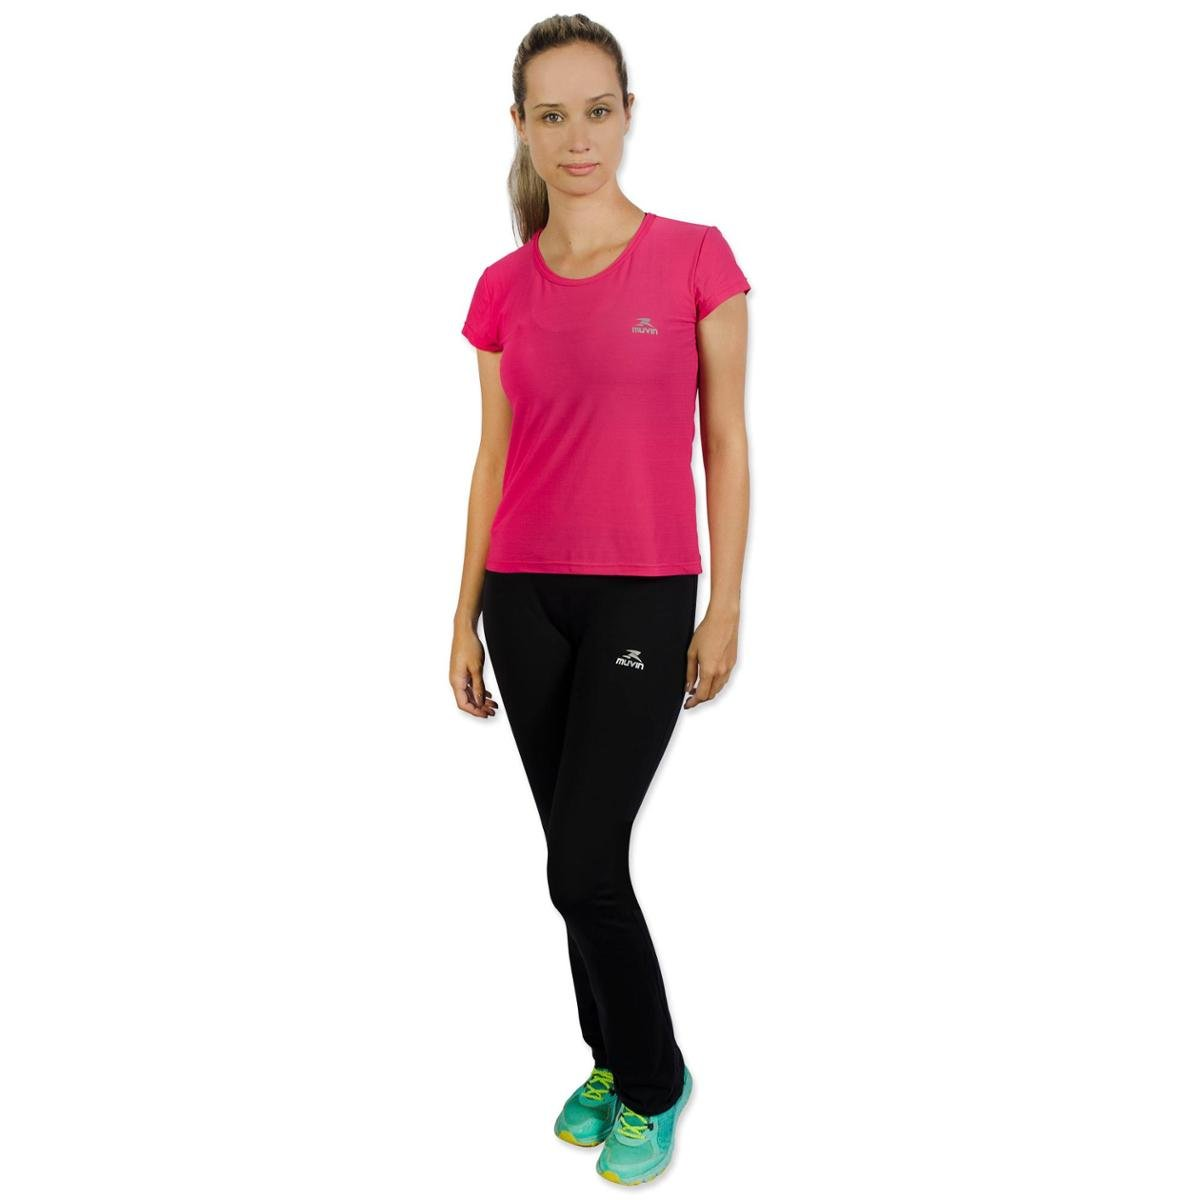 Running Camiseta Color Camiseta Muvin Color Pink Running Pink Muvin aqYwvaS